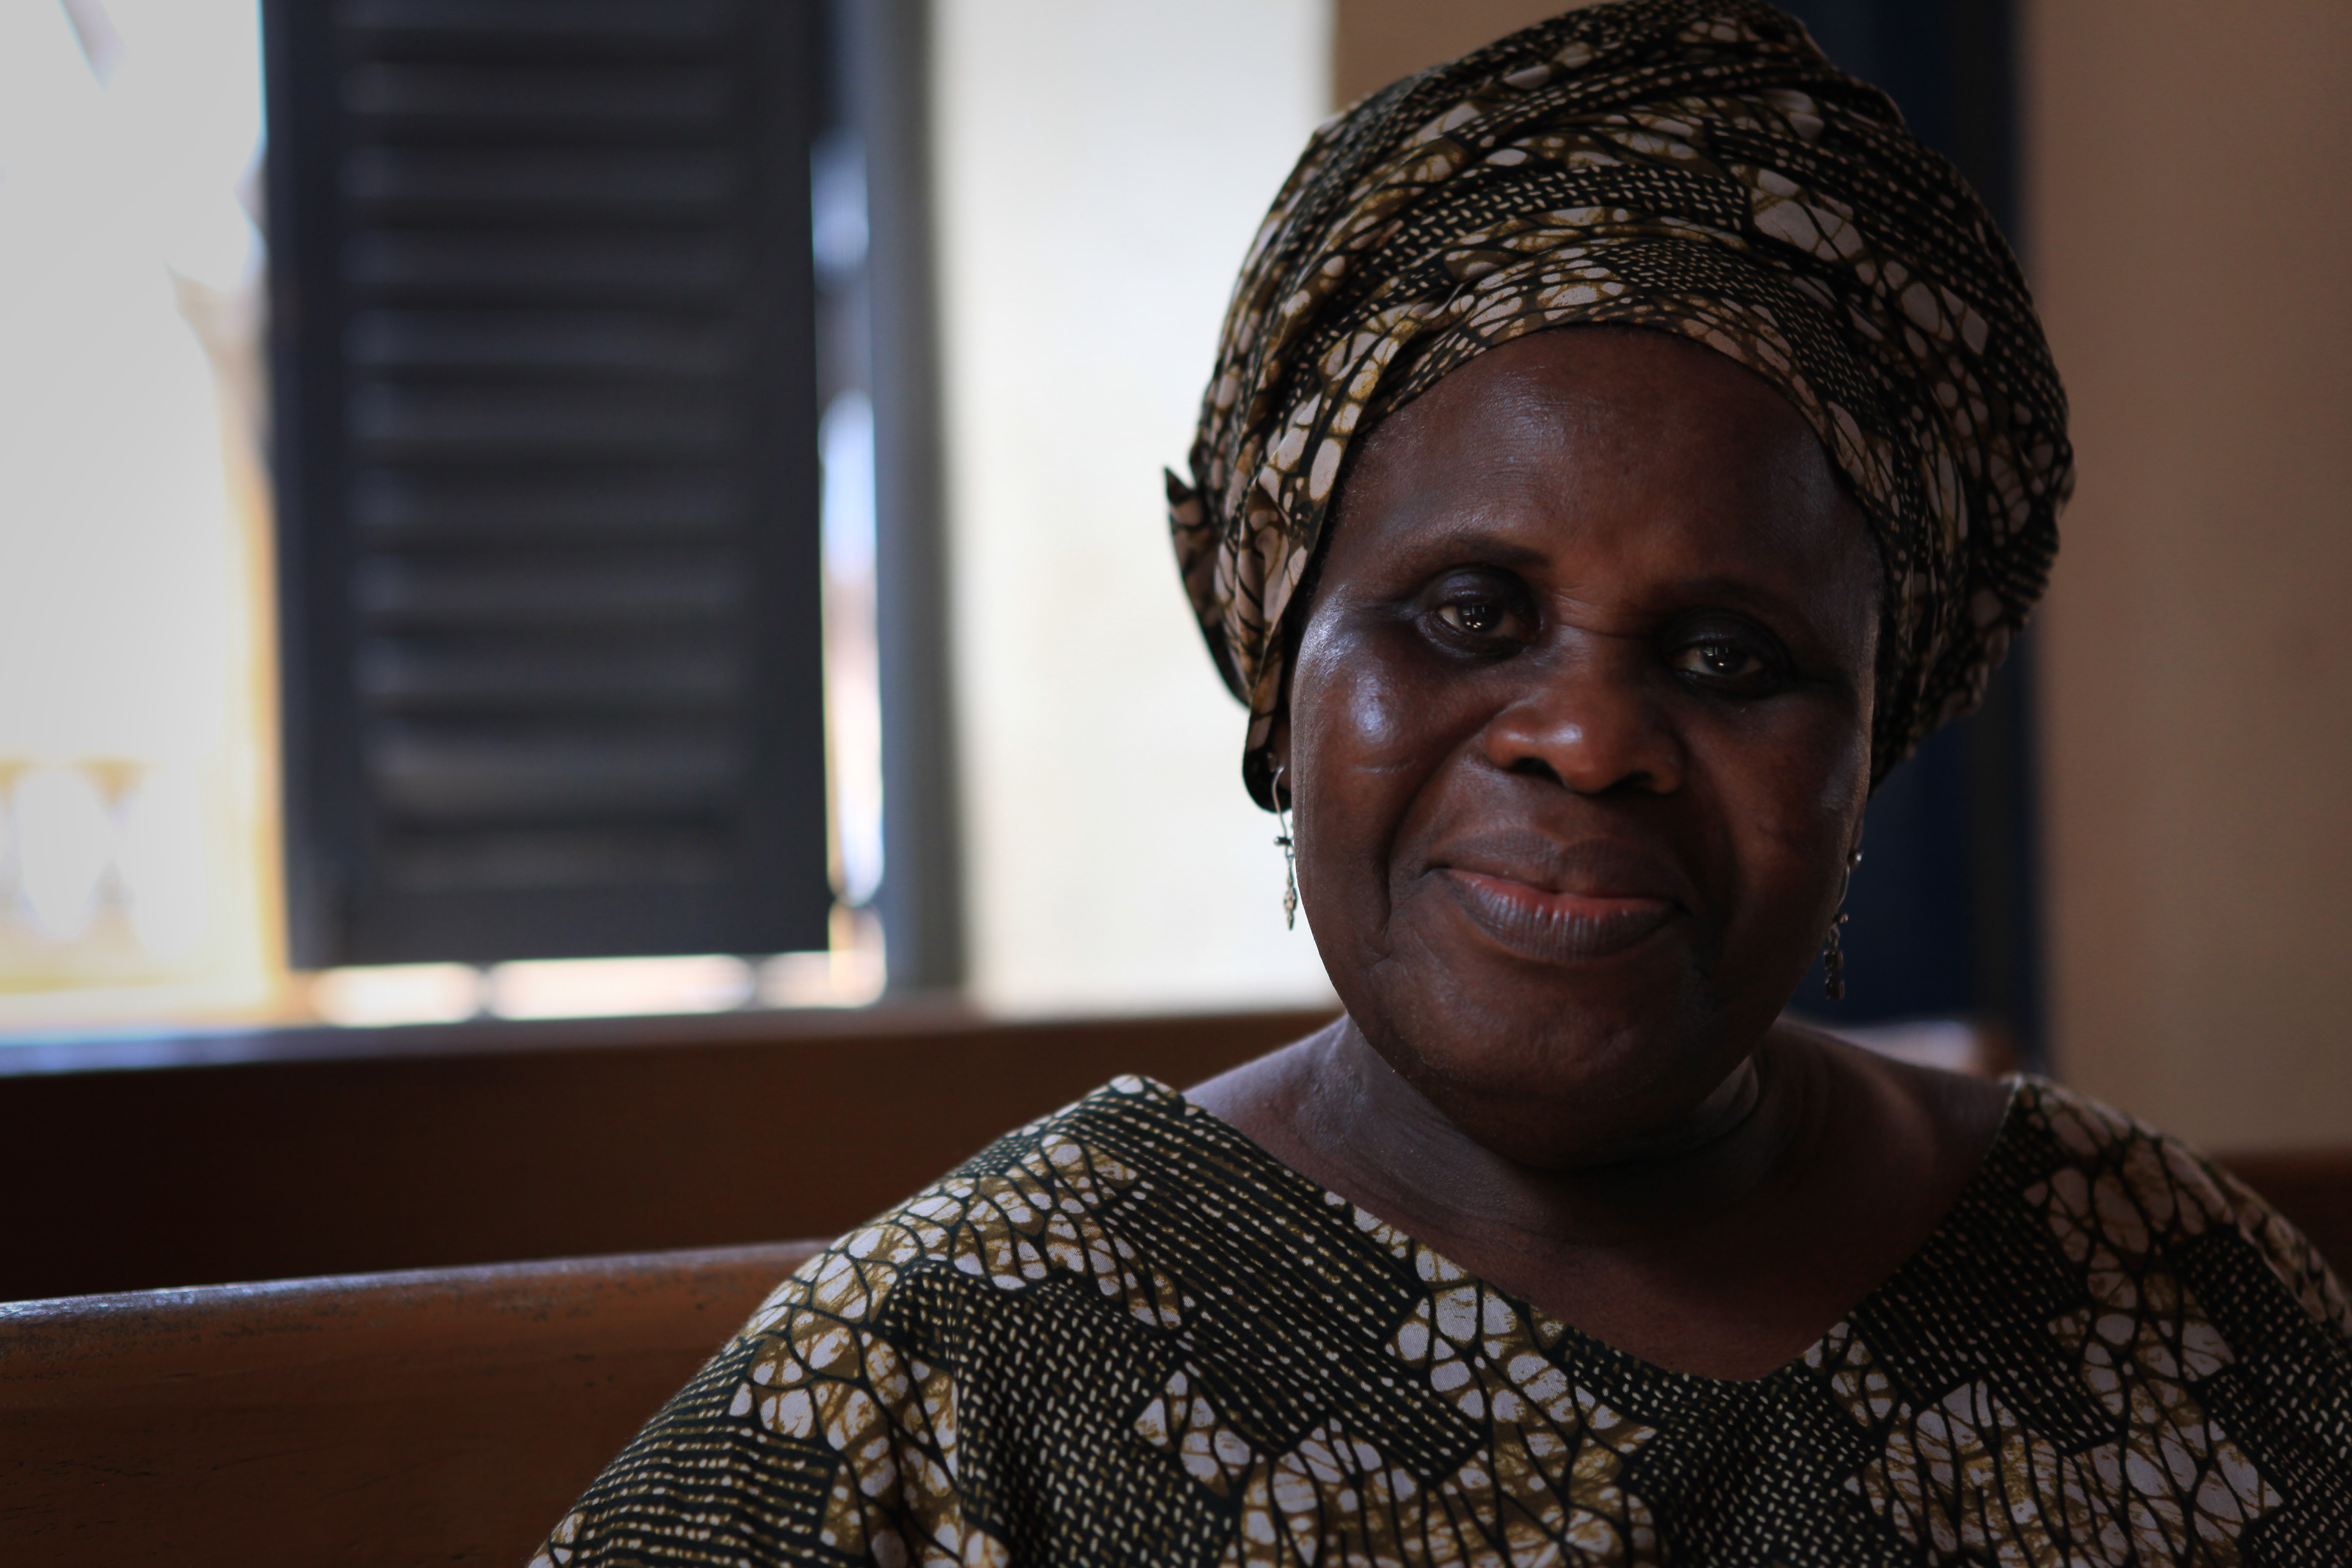 20131024121303 Ama Ata Aidoo on location Ama Ata Aidoo: One Of The Africa`s Oldest Best Author, Feminist, Academician, An Internationally Recognized Literary Giant And Intellectual Ghanaian Figure